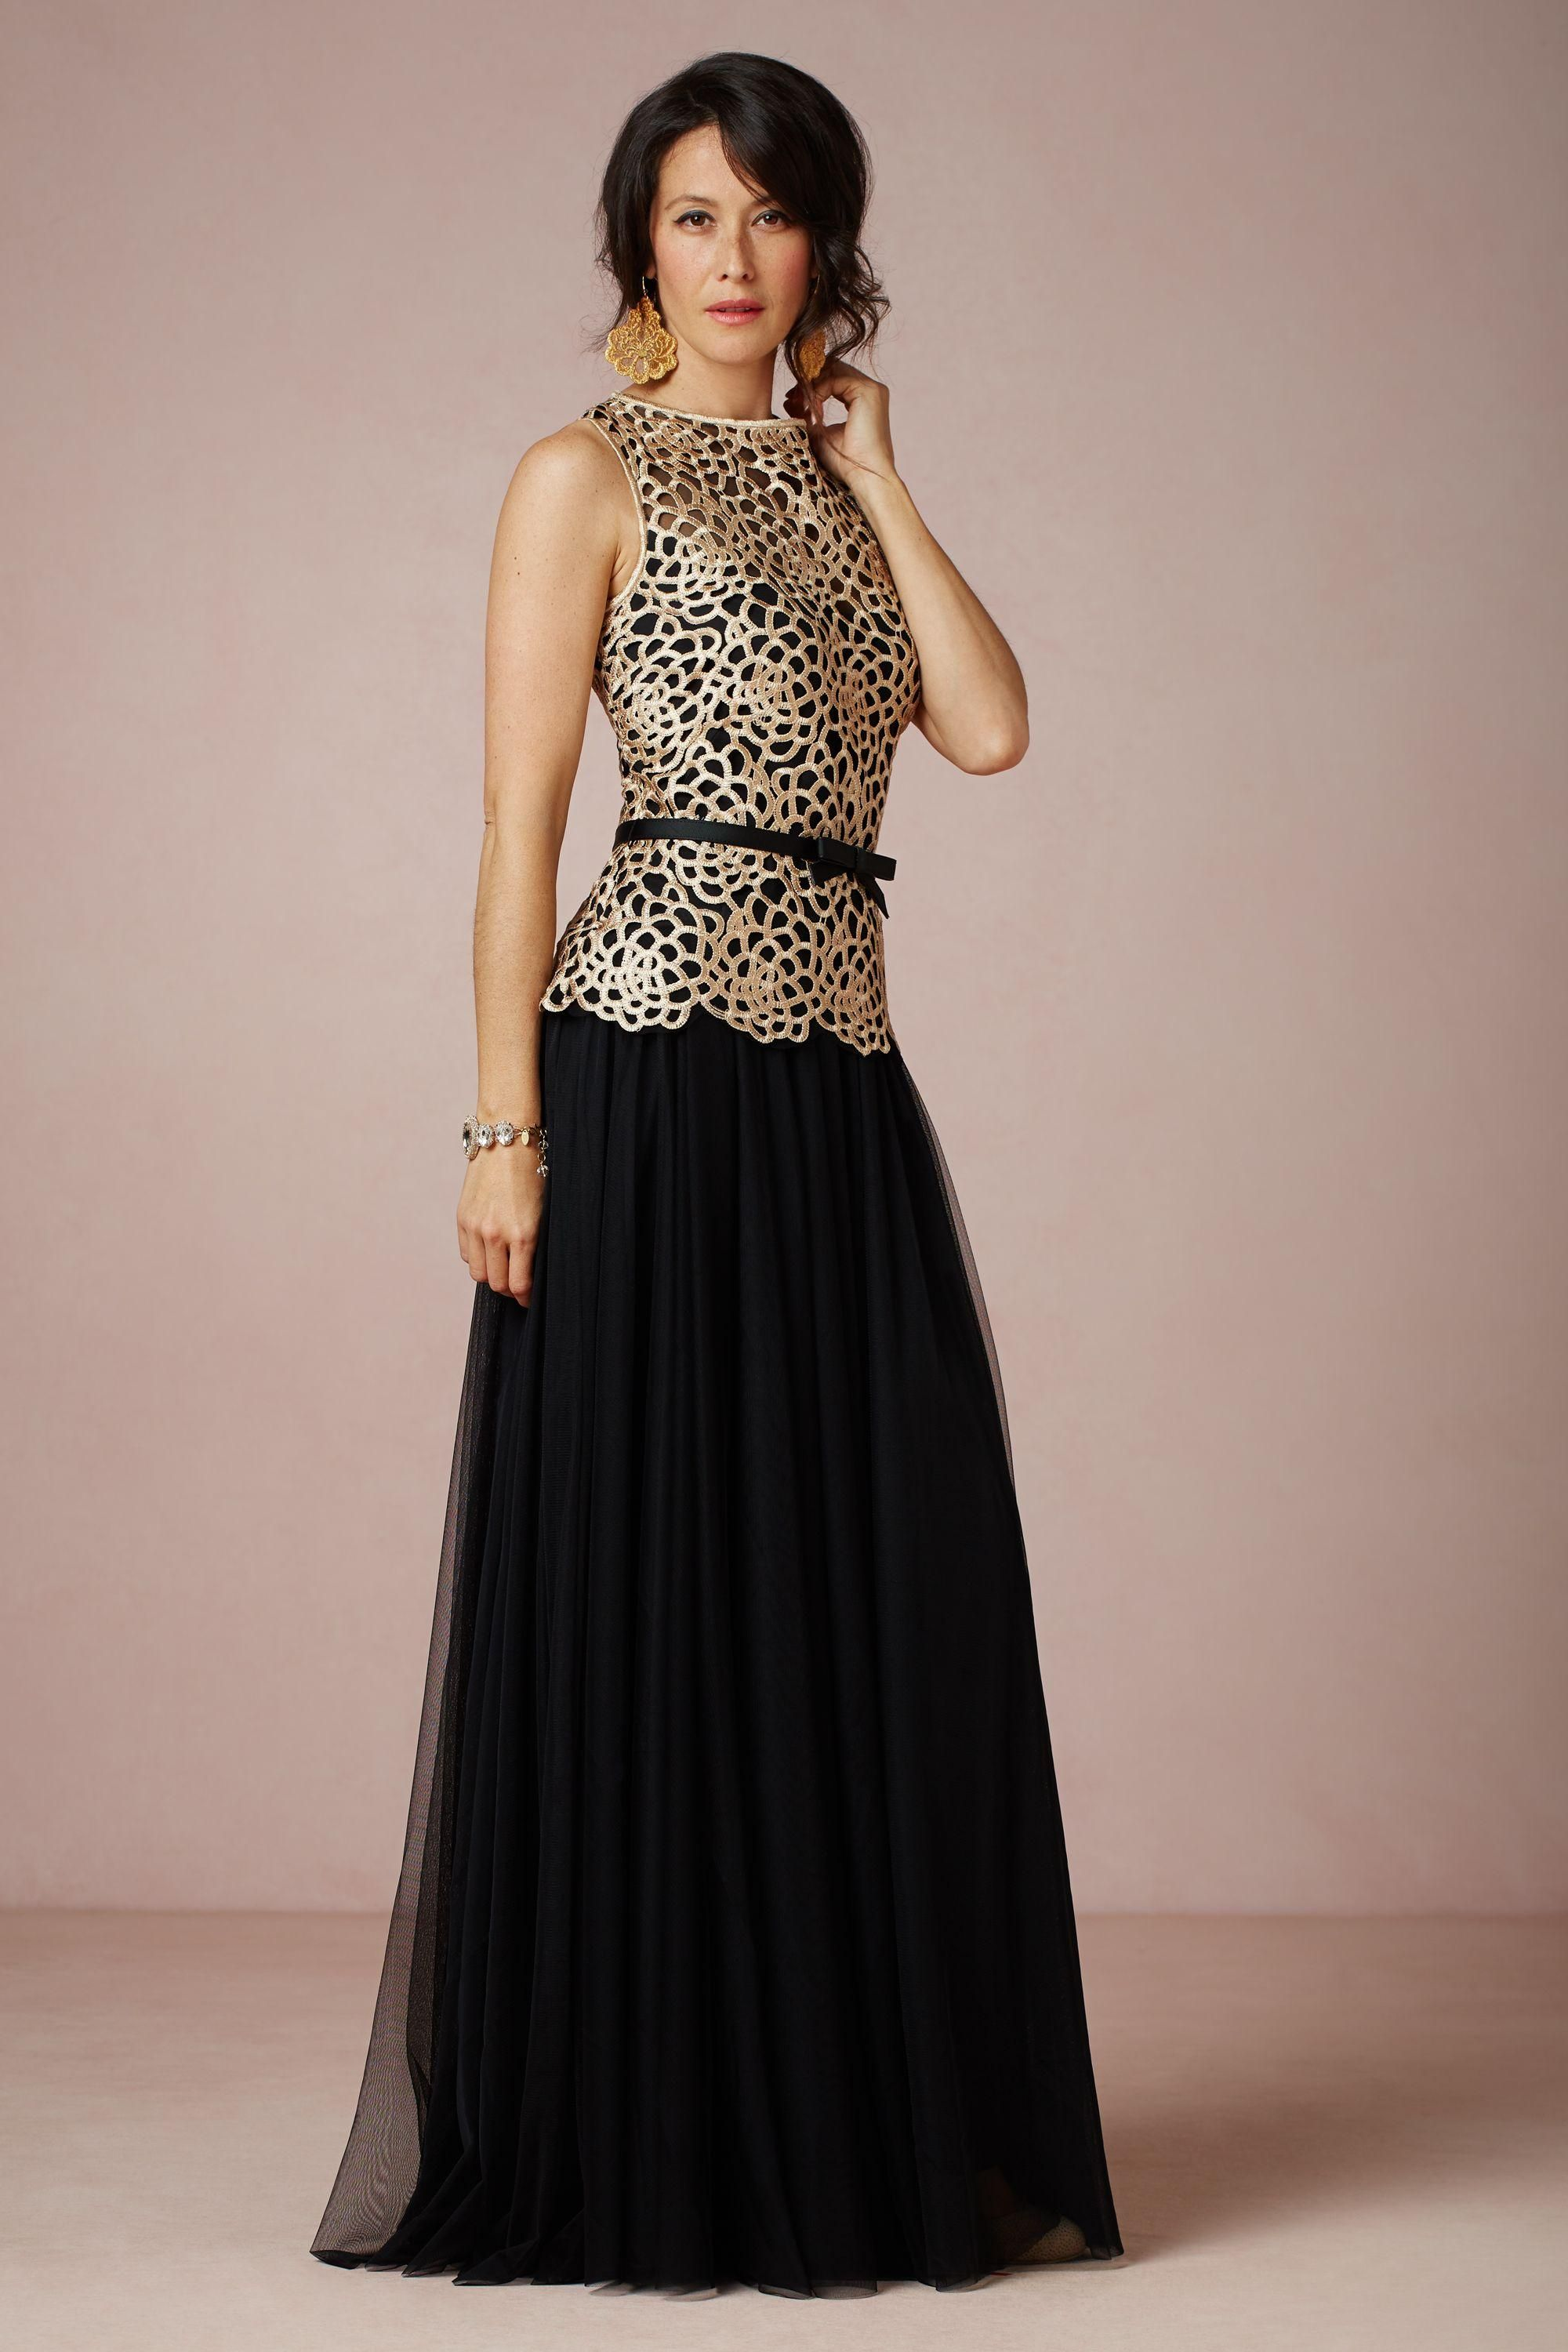 Black & Gold Gown | wedding. | Pinterest | Gold gown, Black gold and ...